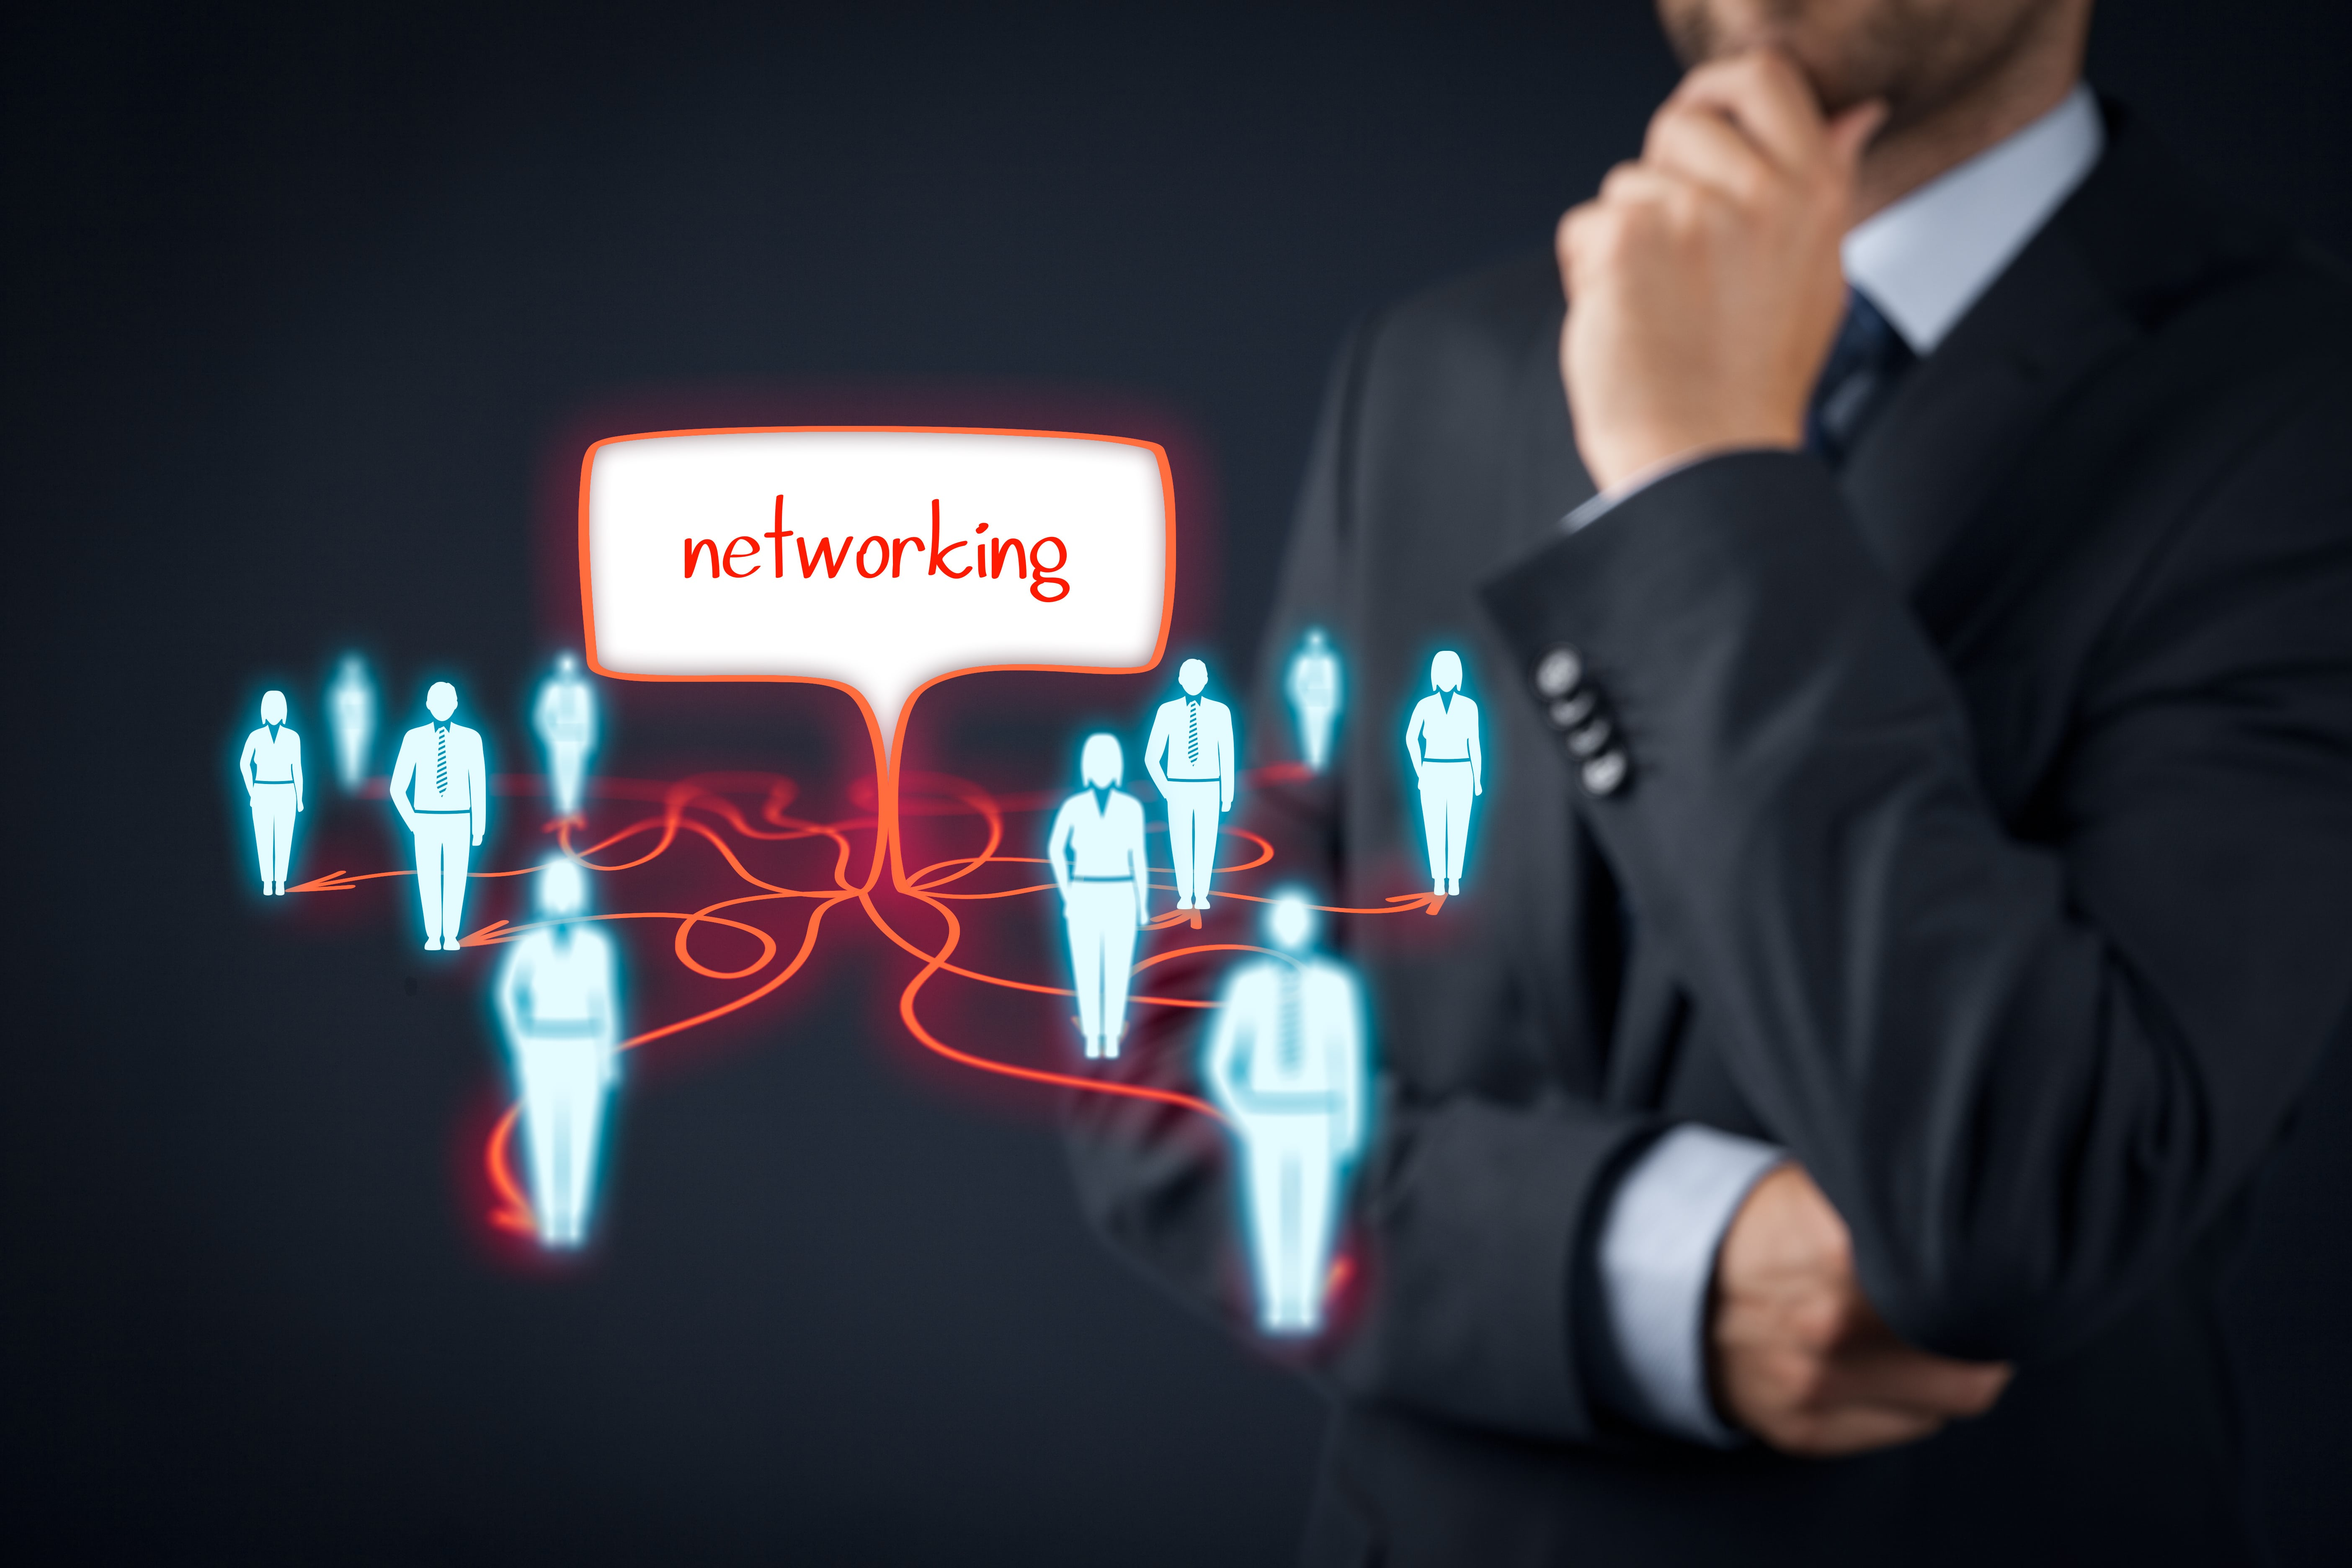 Networking at Industry Conferences and Trade Shows